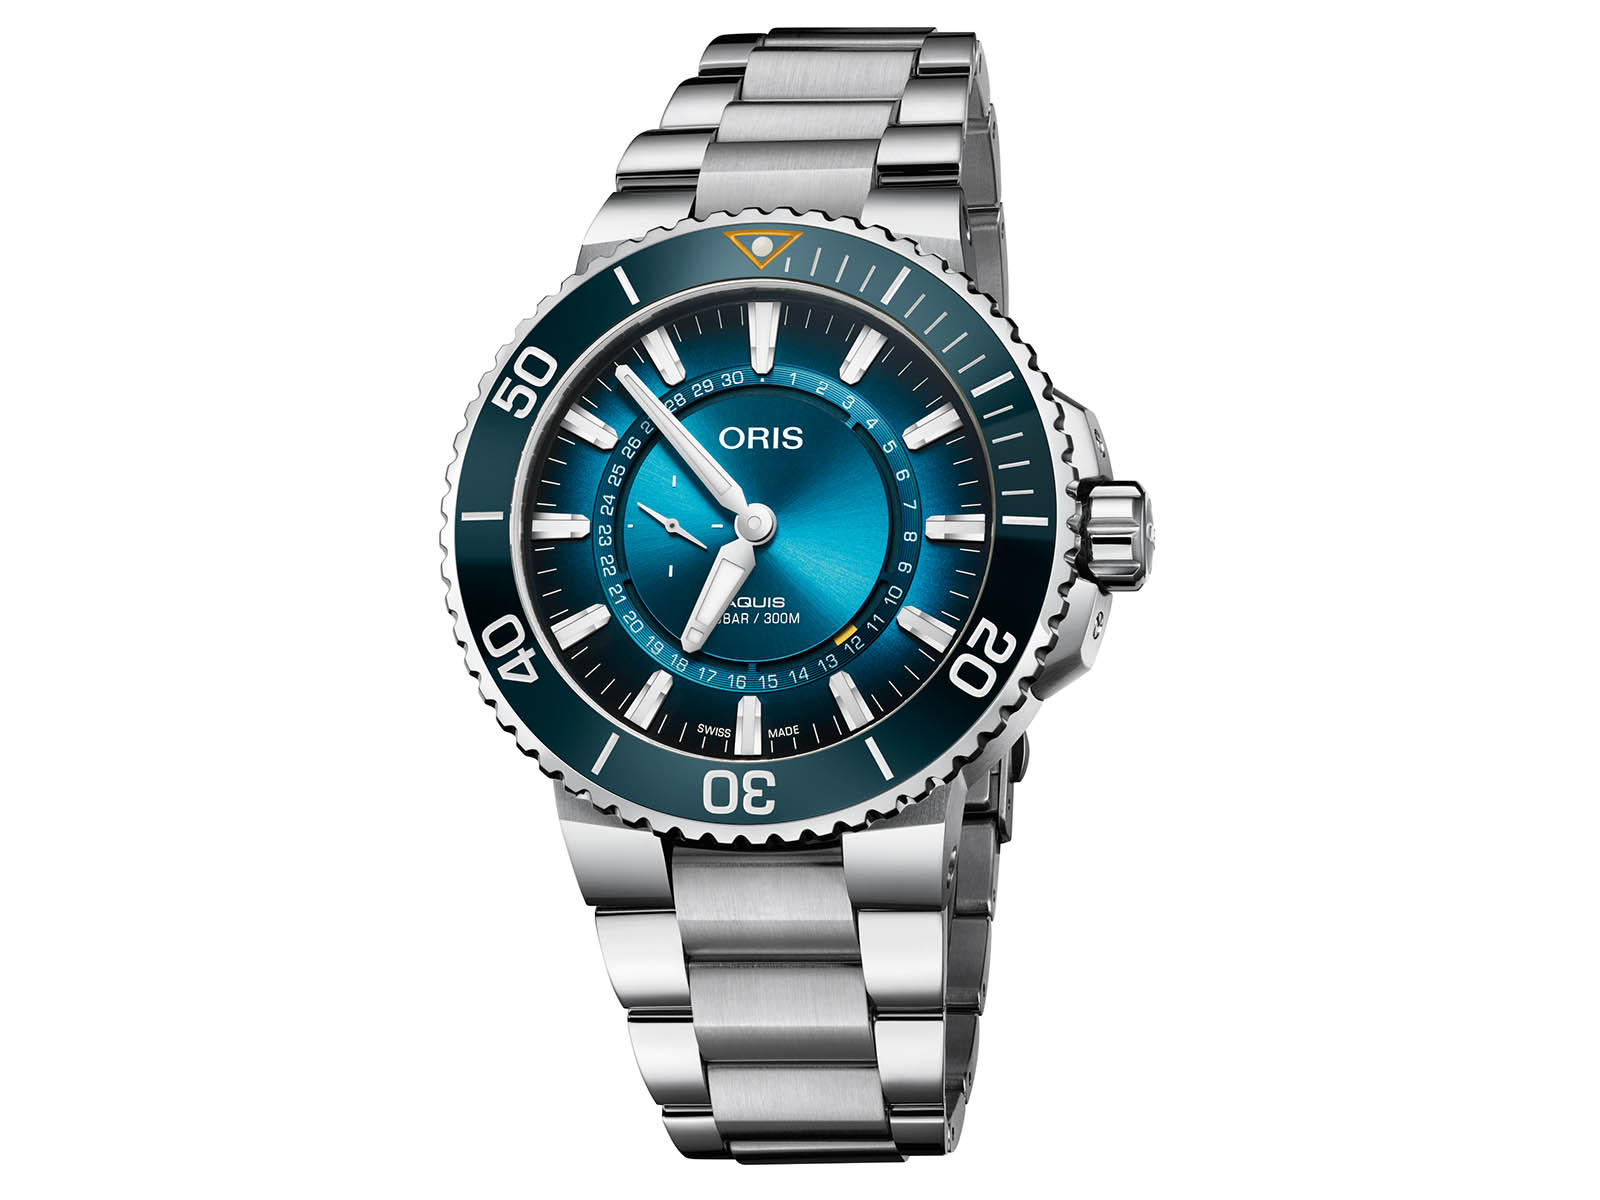 01-743-7734-4185-set-oris-great-barrier-reef-limited-edition-1.jpg